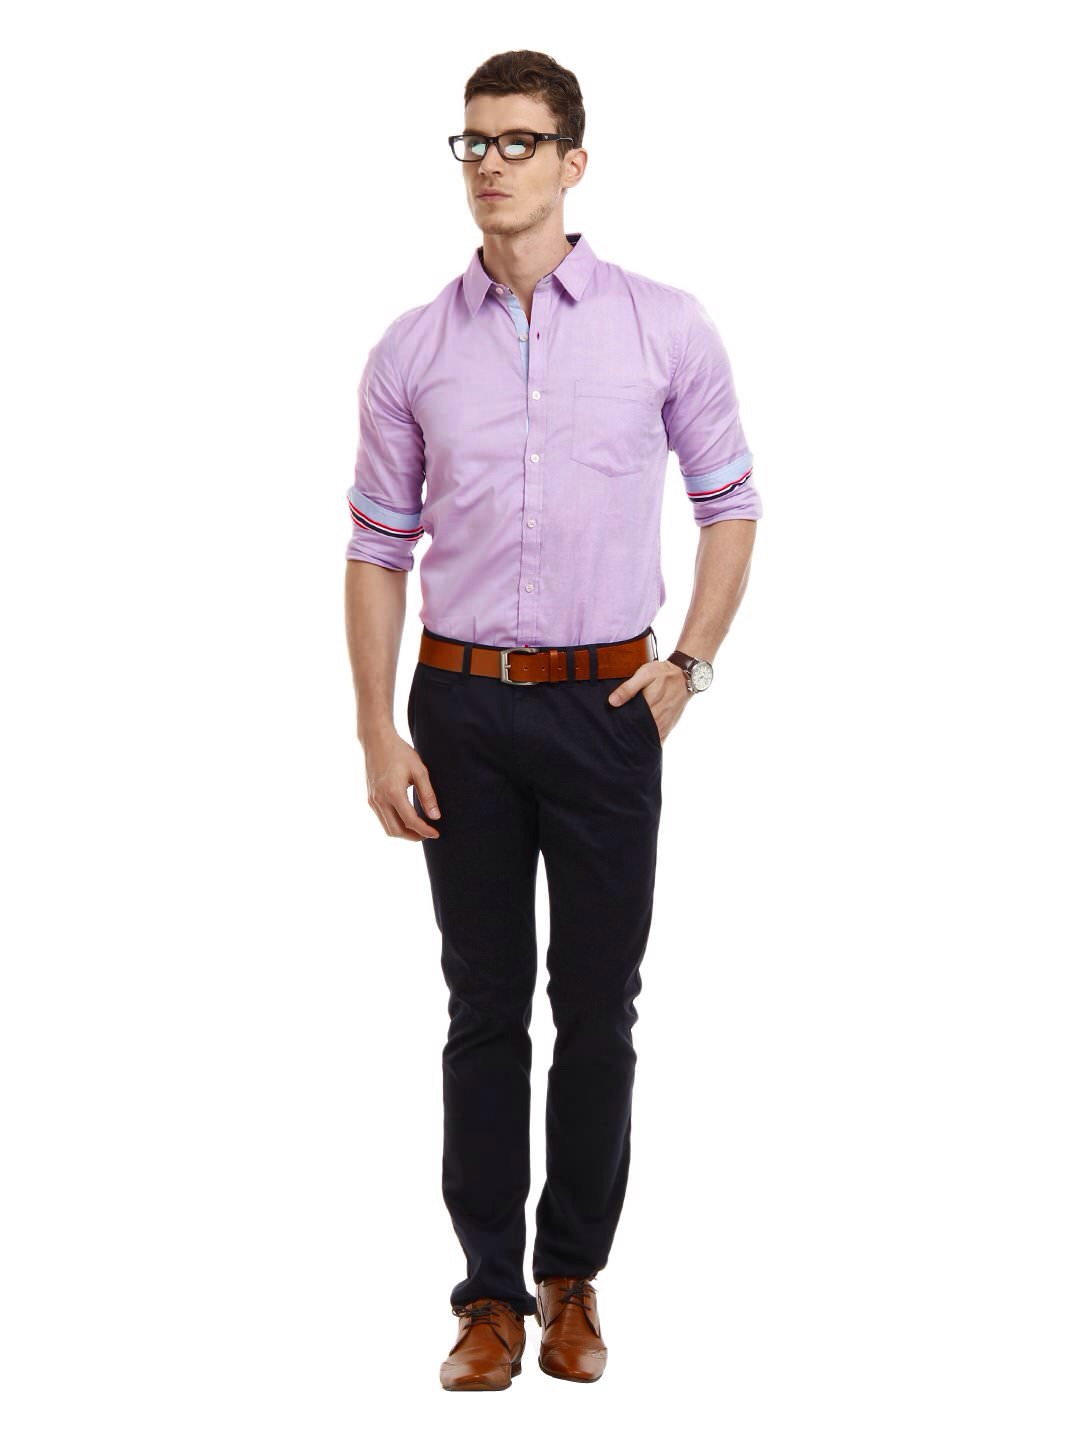 What To Wear To An Interview The Student Room